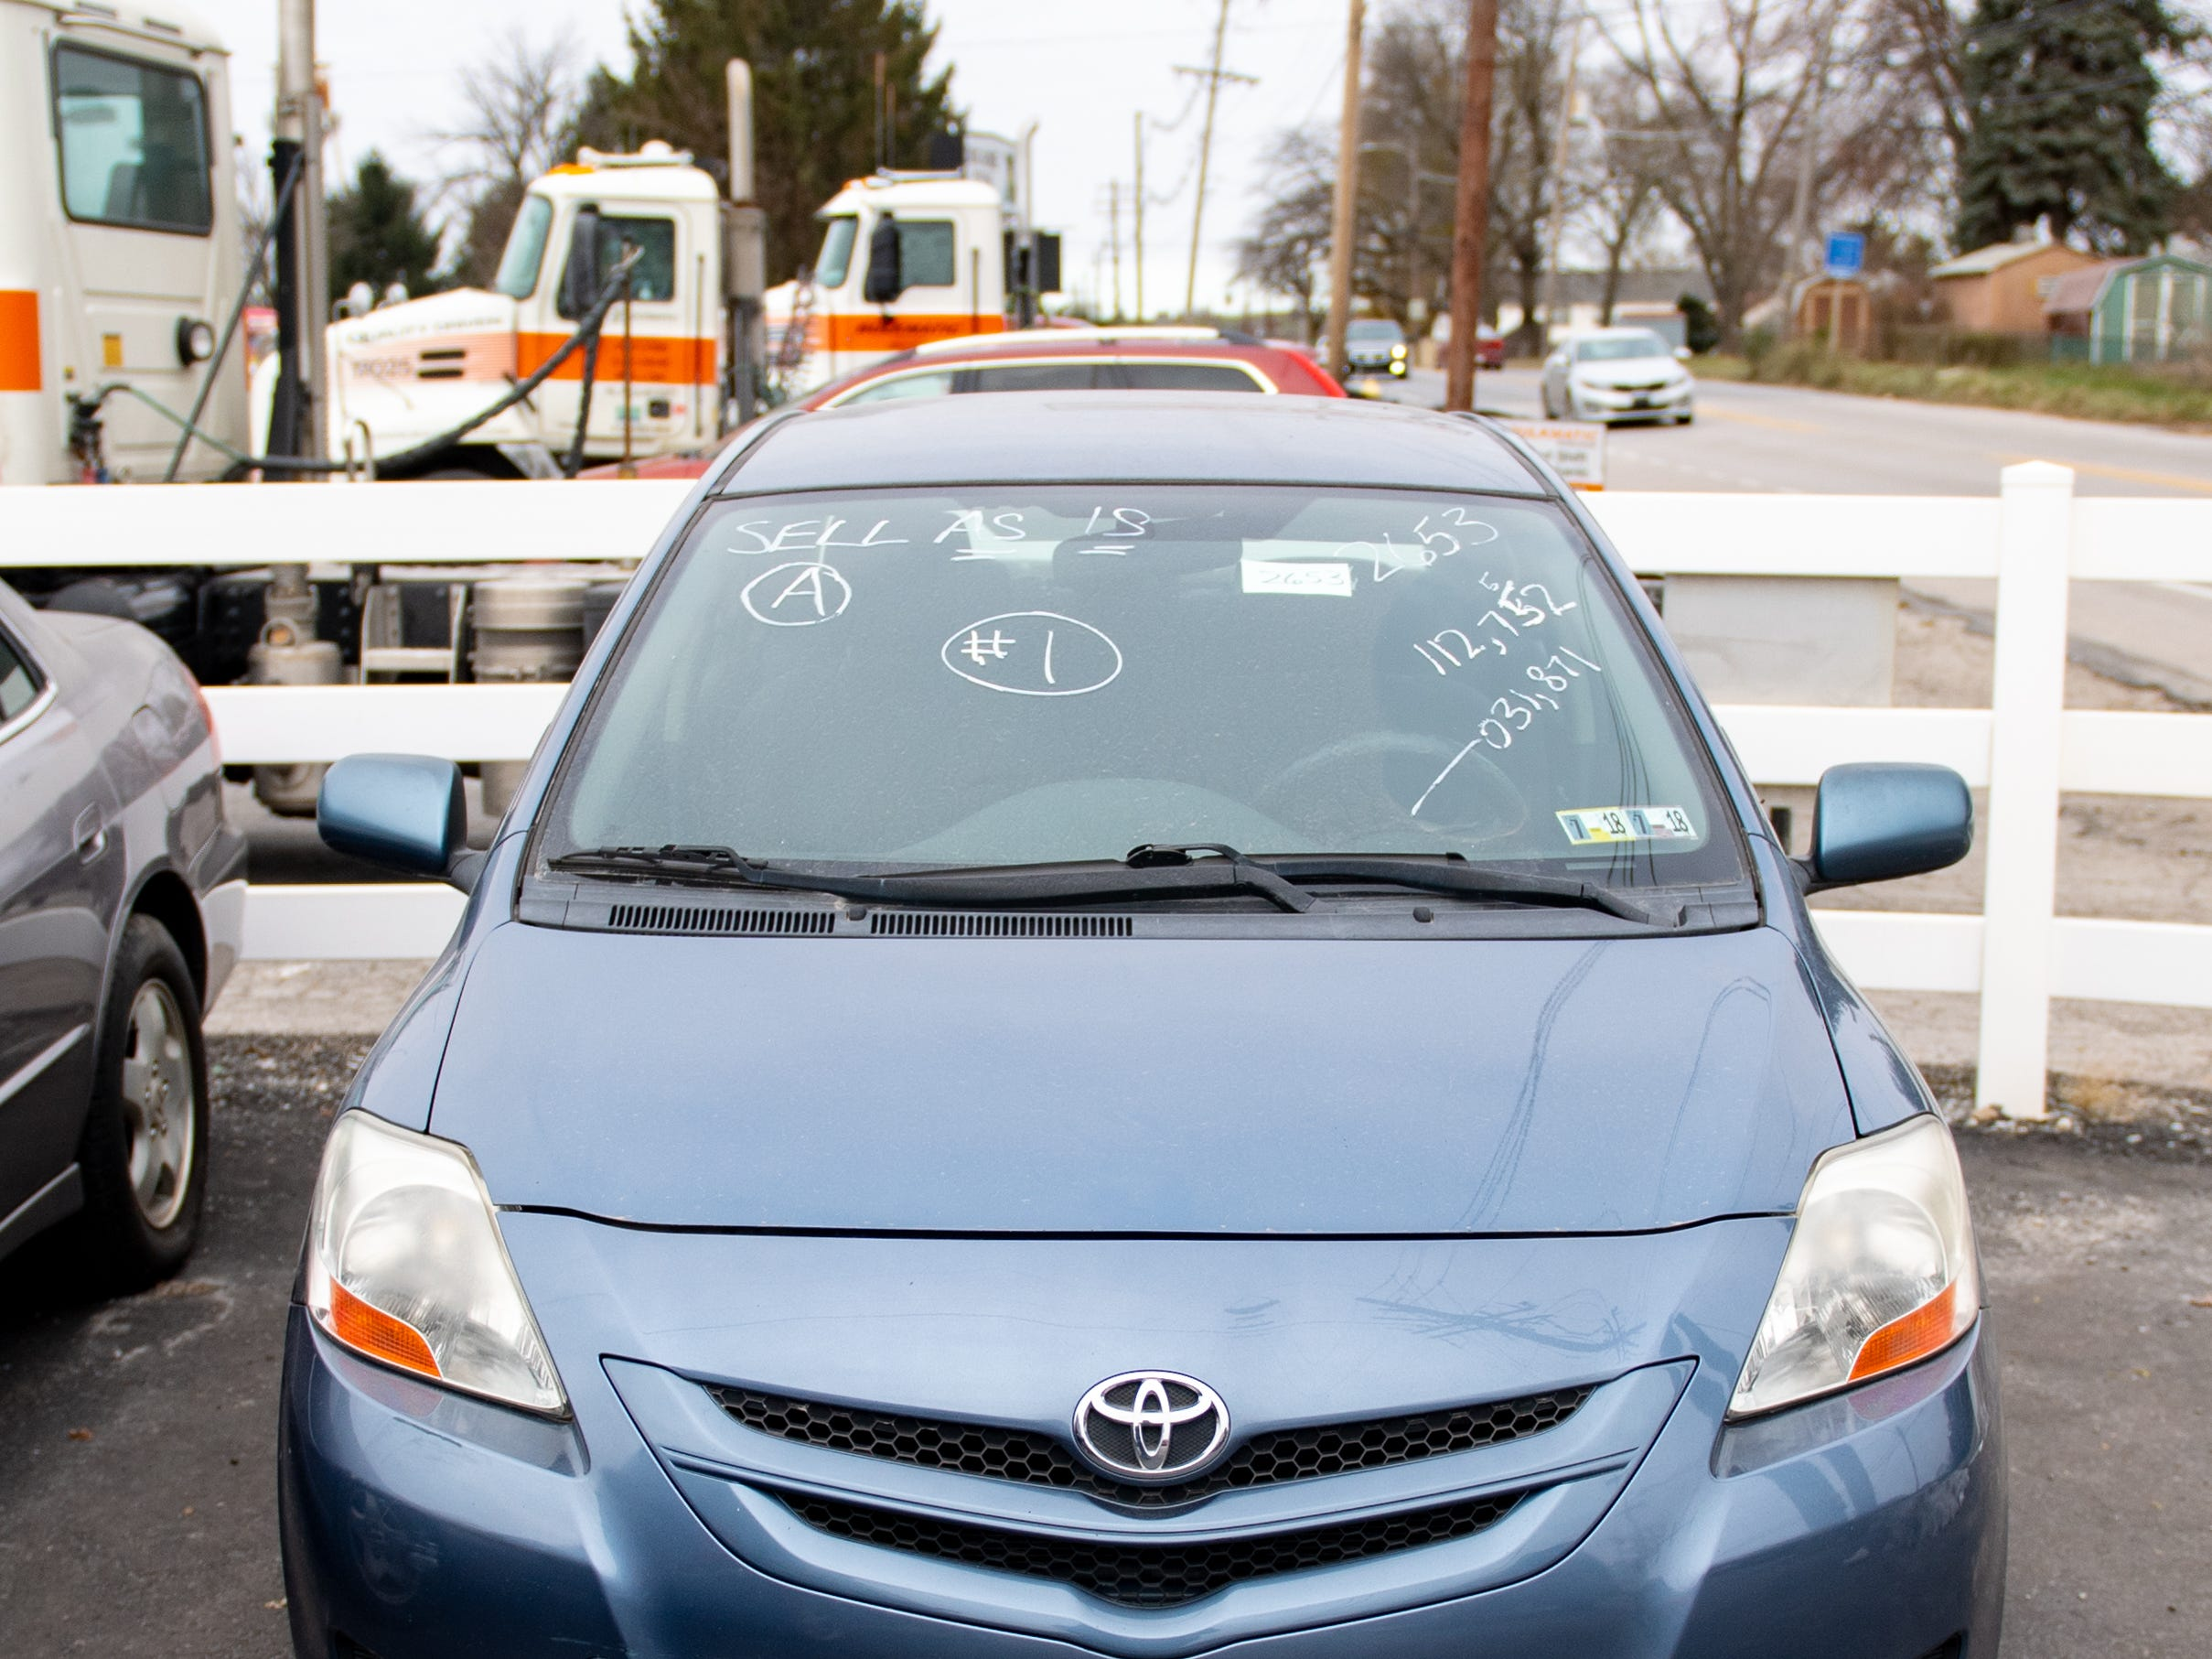 Information about each car is written on their respective windshields during the York County Drug Task Force auction on Black Friday, November 23, 2018.